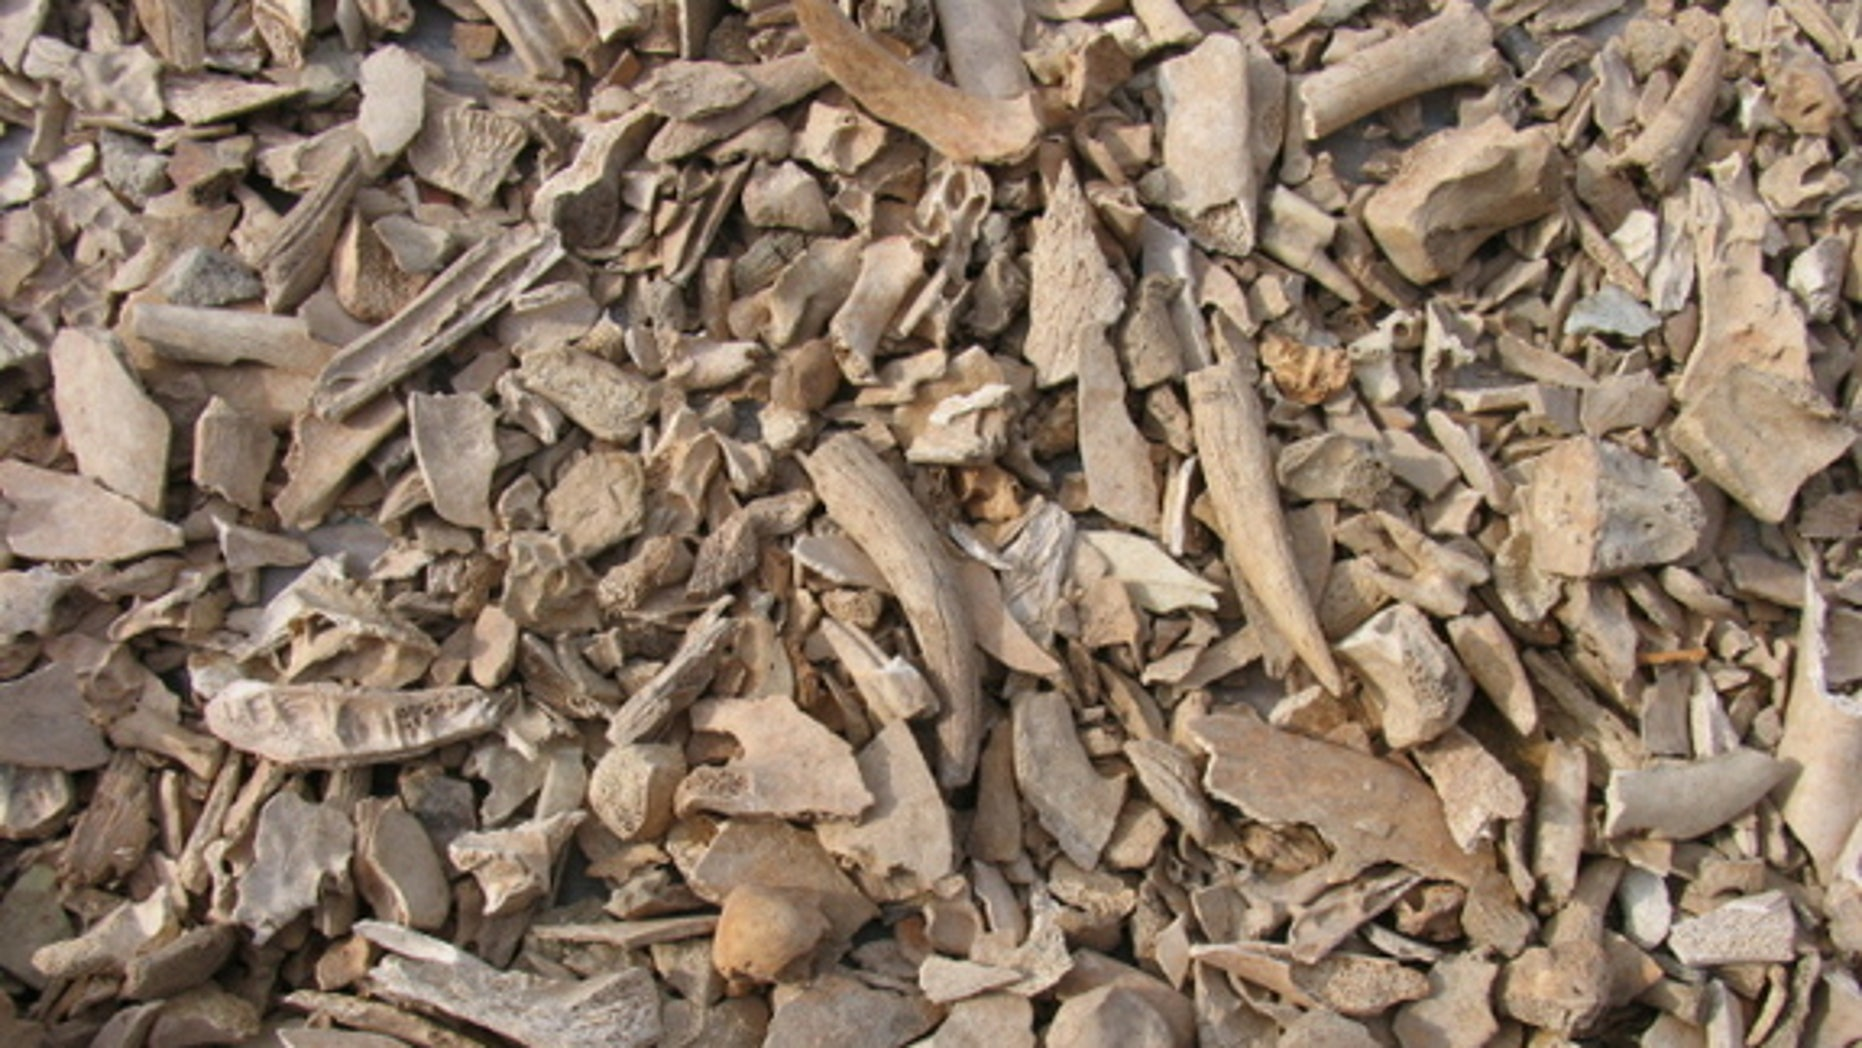 Archaeologists pulled a metric ton of cattle bones from an ancient Corinth theater, perhaps representing yearly feasts in the 4th and 5th centuries A.D.